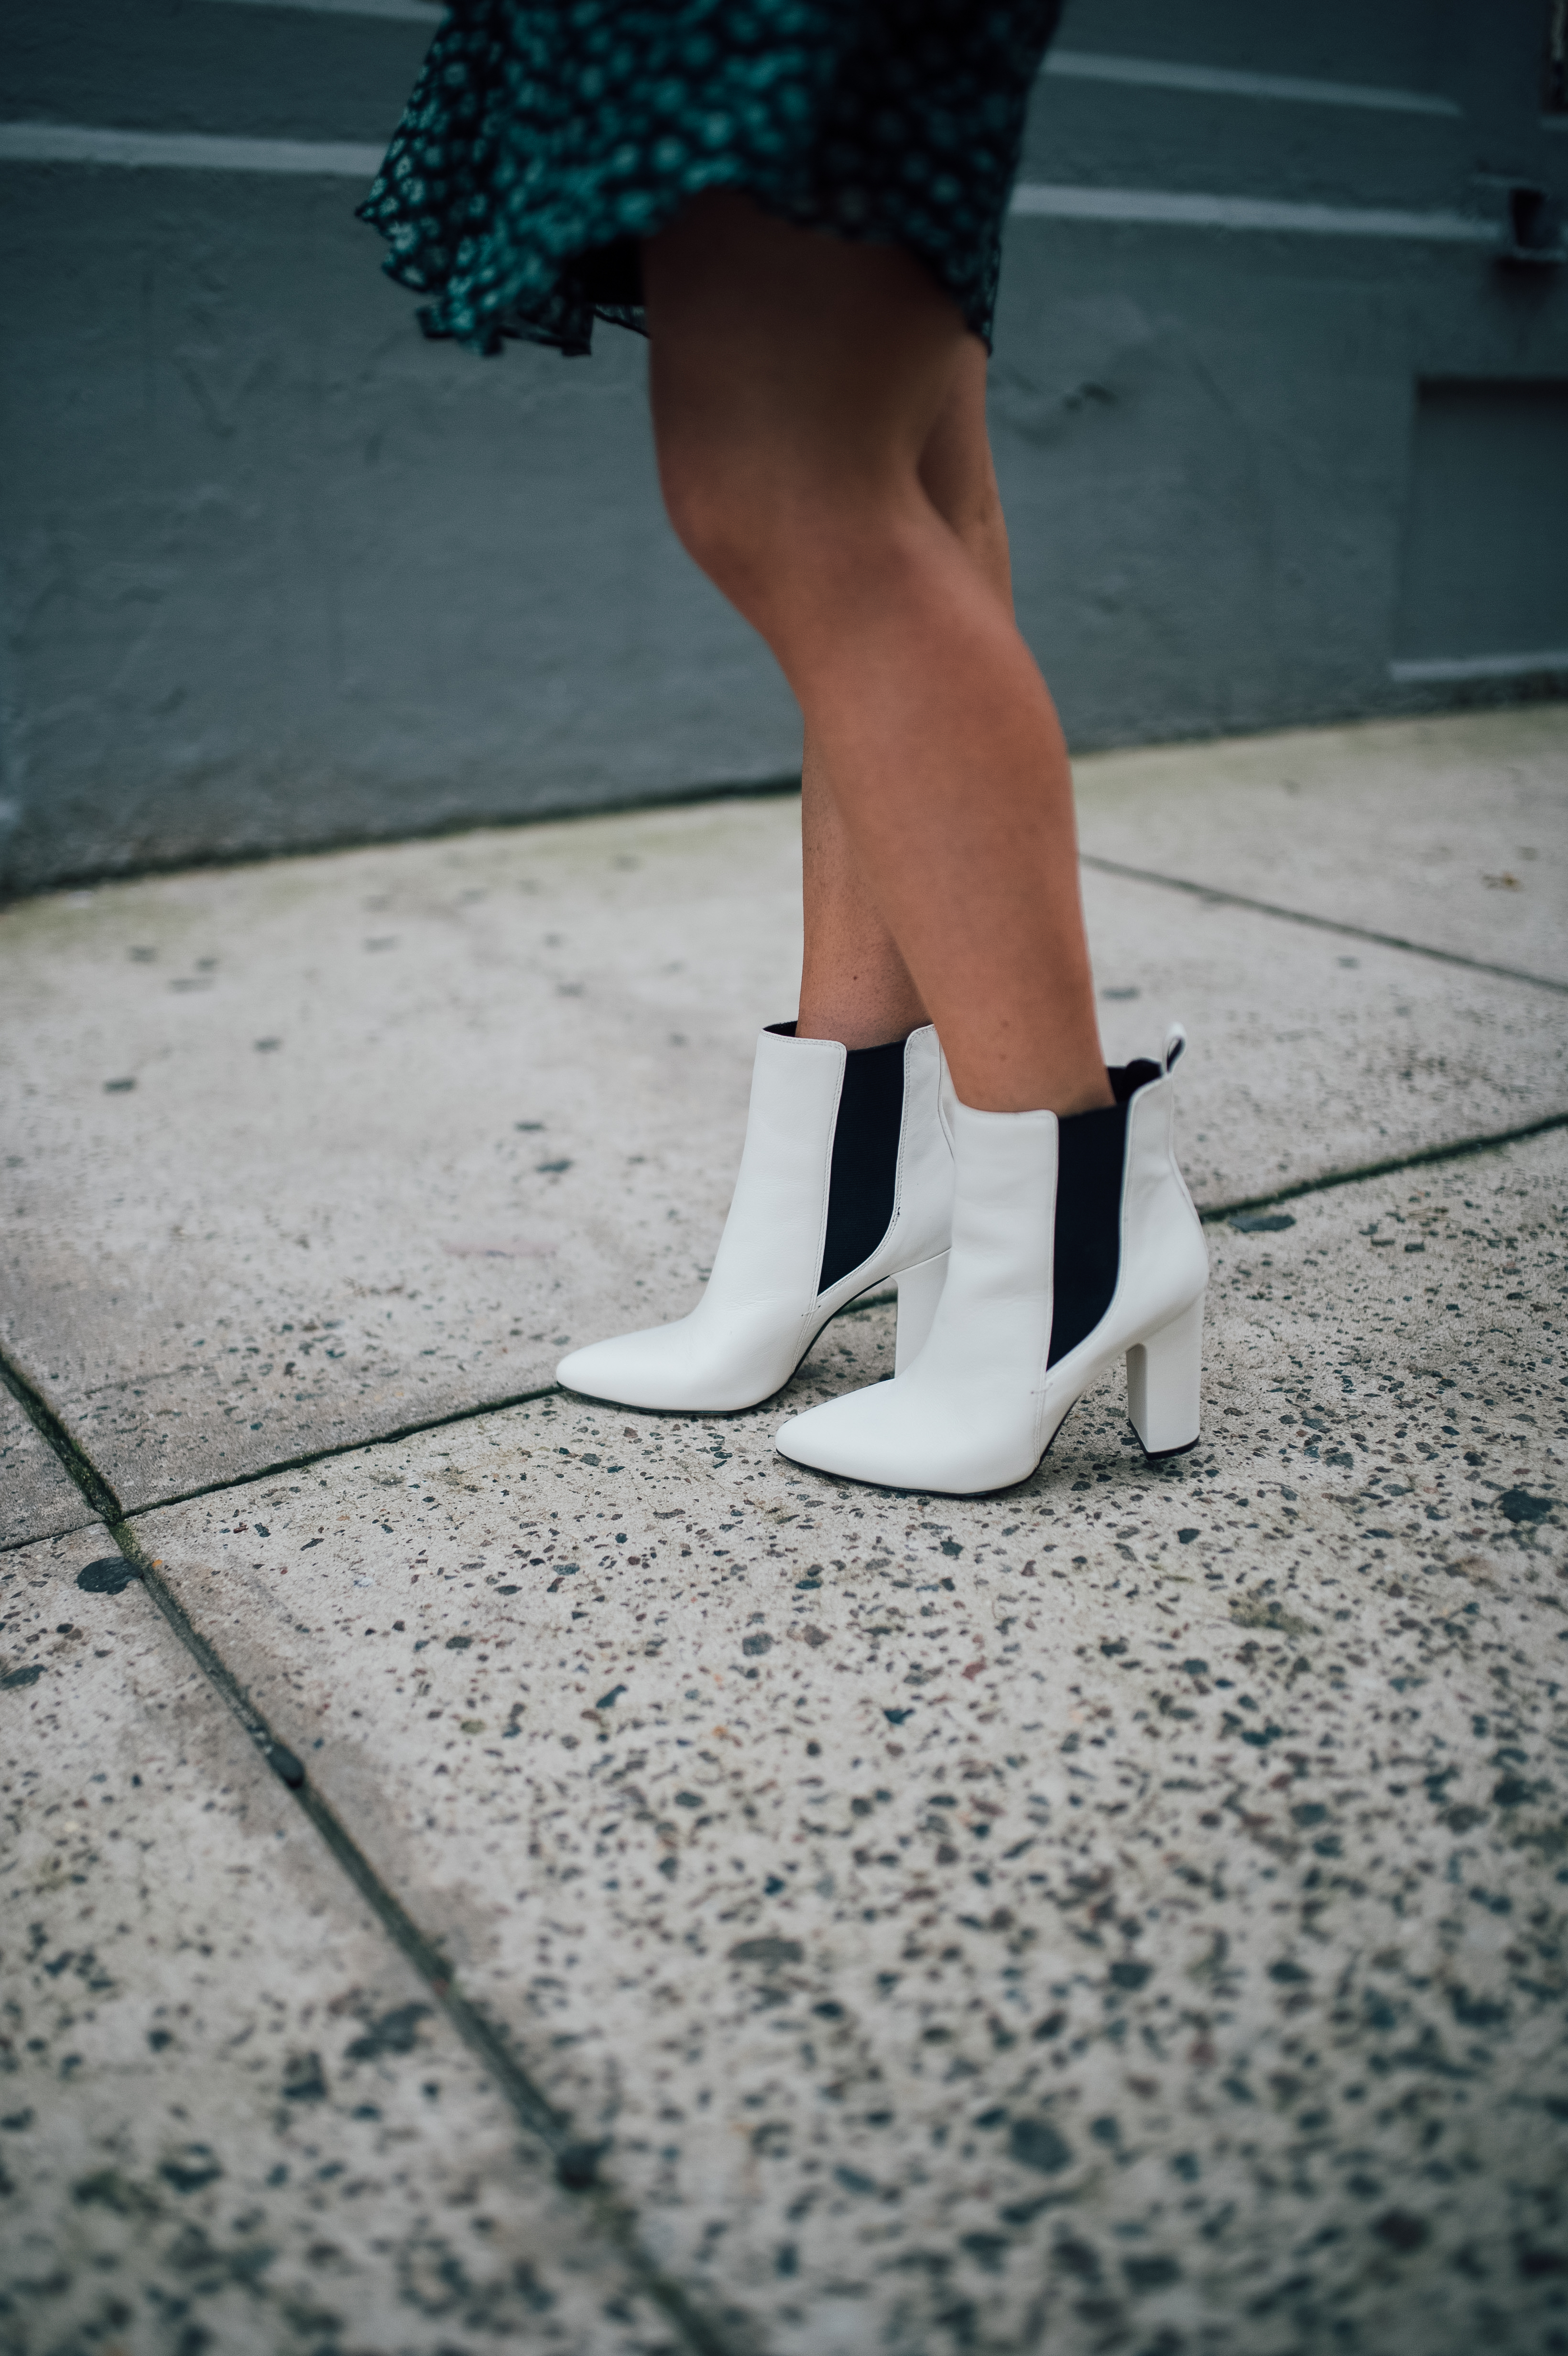 Fall Trend Alert: White Booties! by San Francisco fashion blogger For the Love